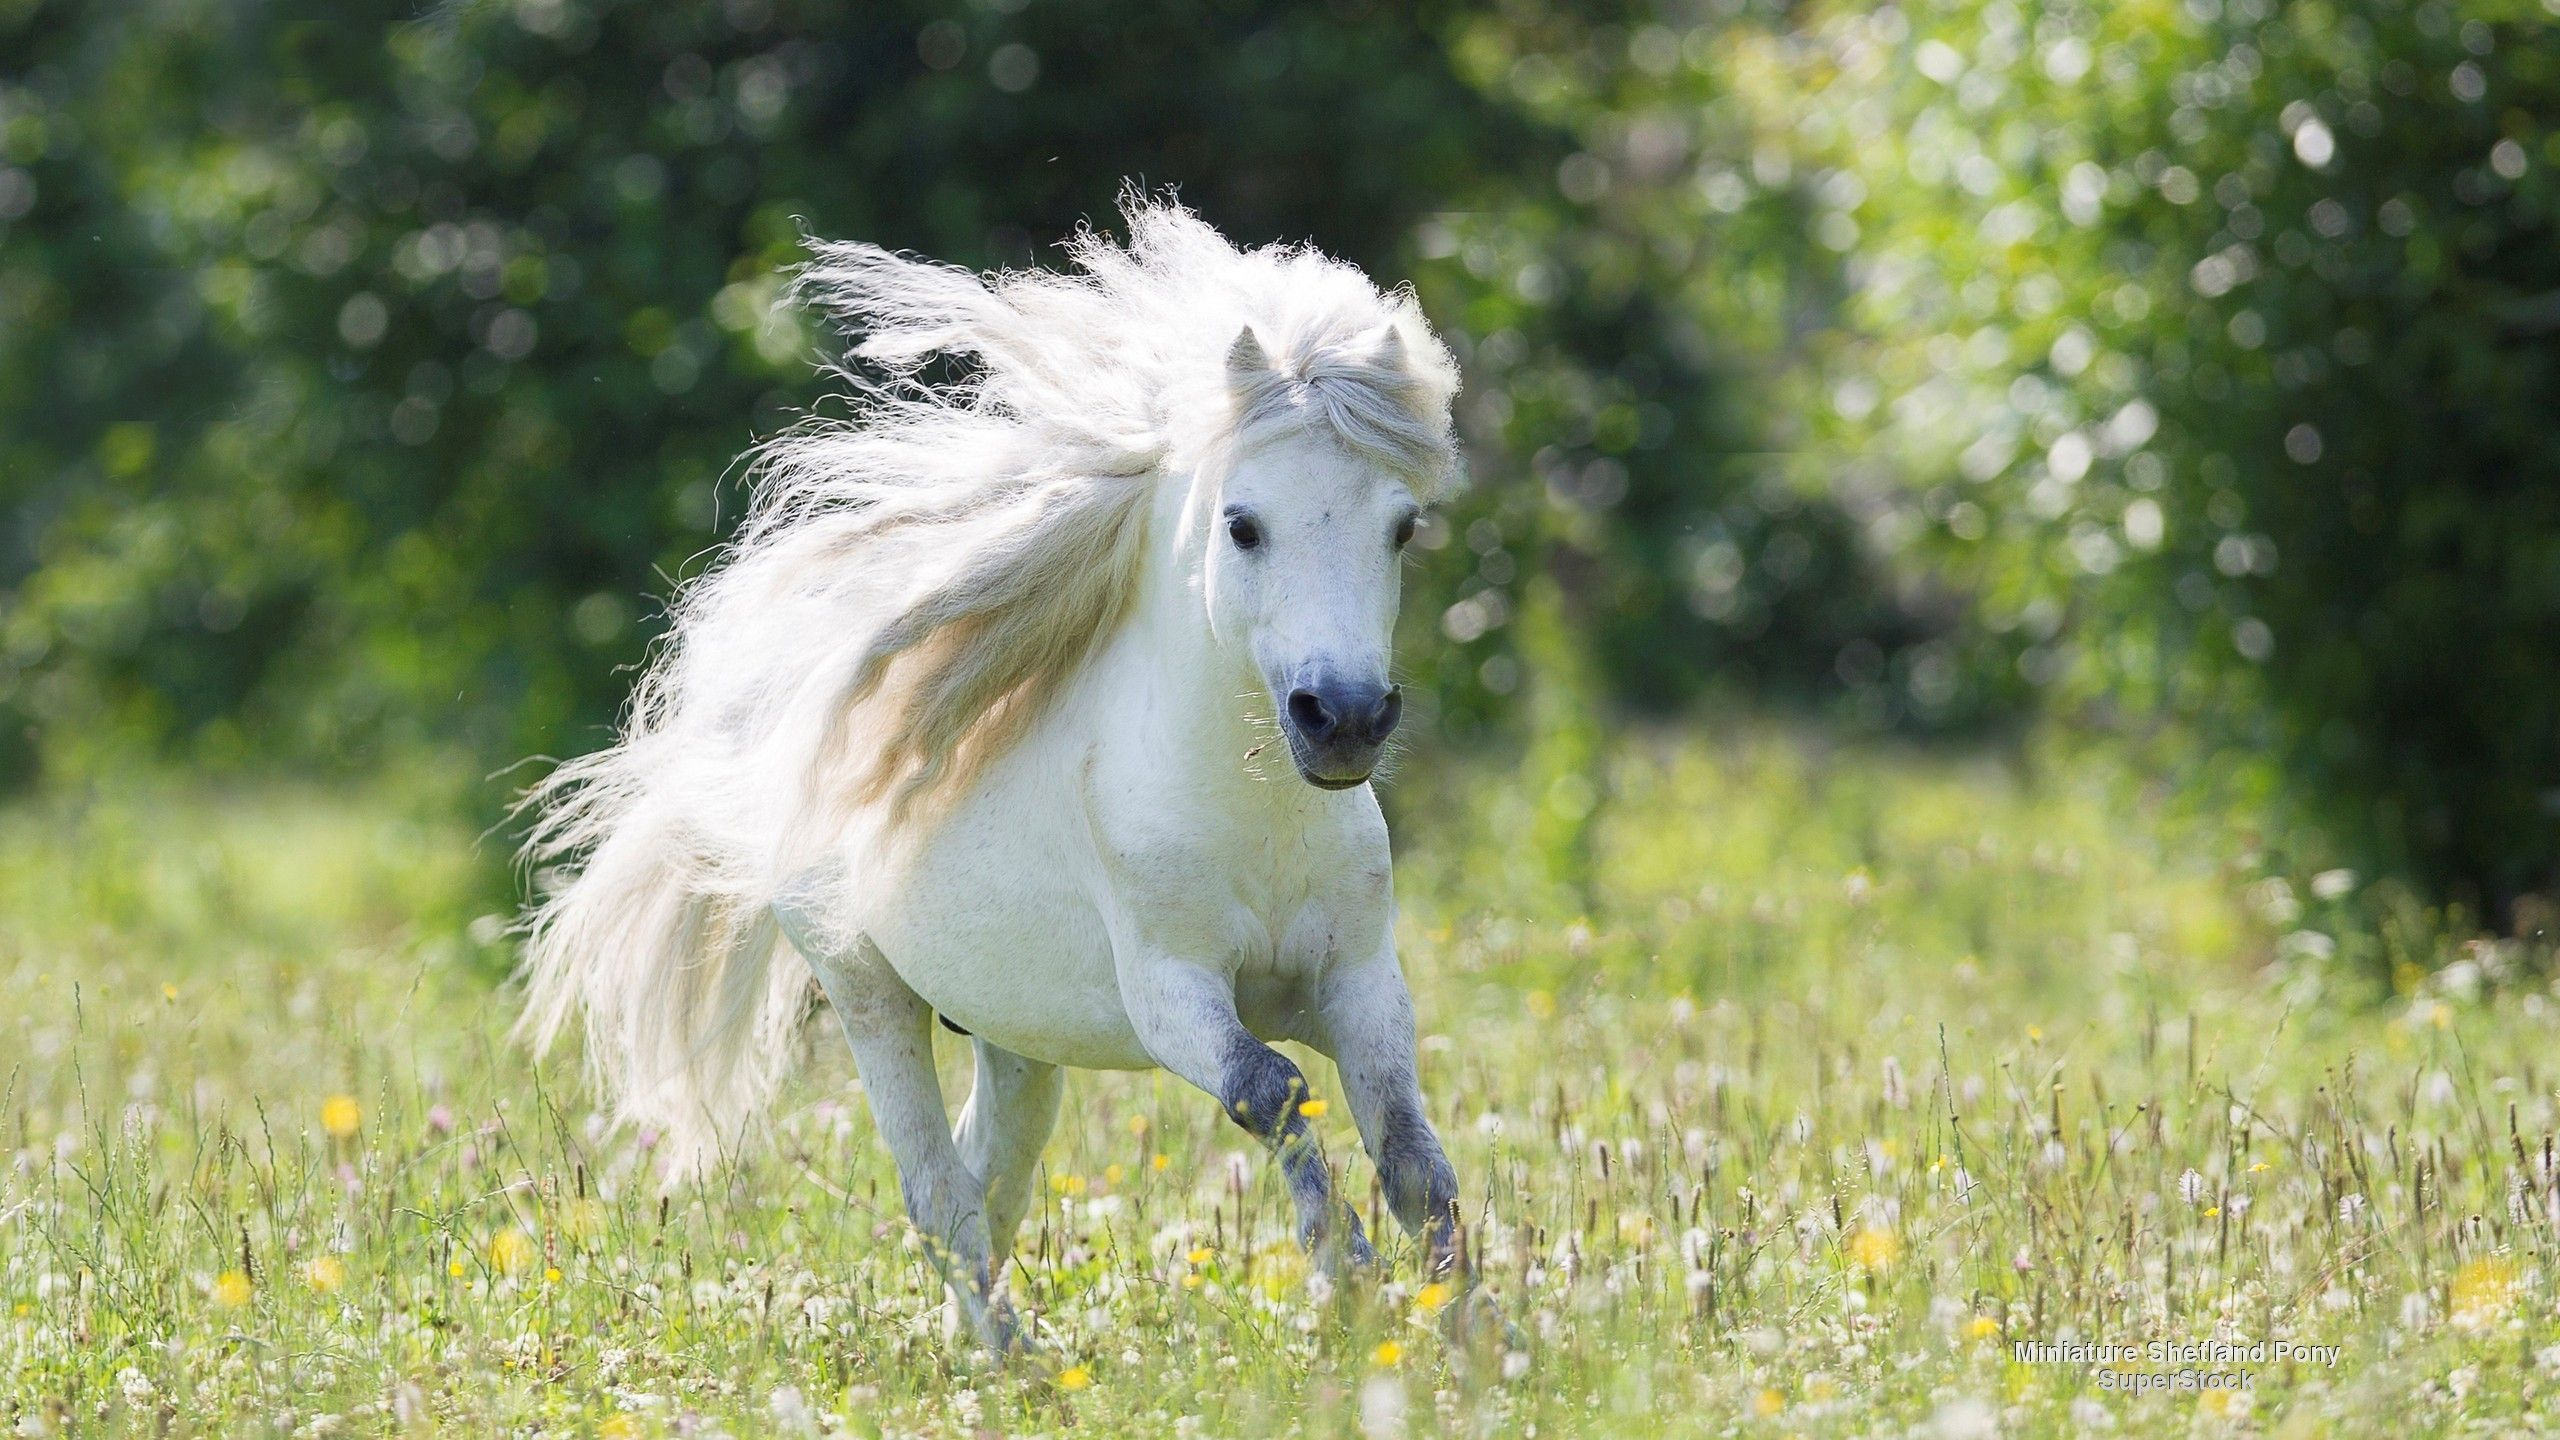 Great Wallpaper Horse Android Phone - a8a3173d6c55218a3896c8920e6059c6  2018_967541.jpg